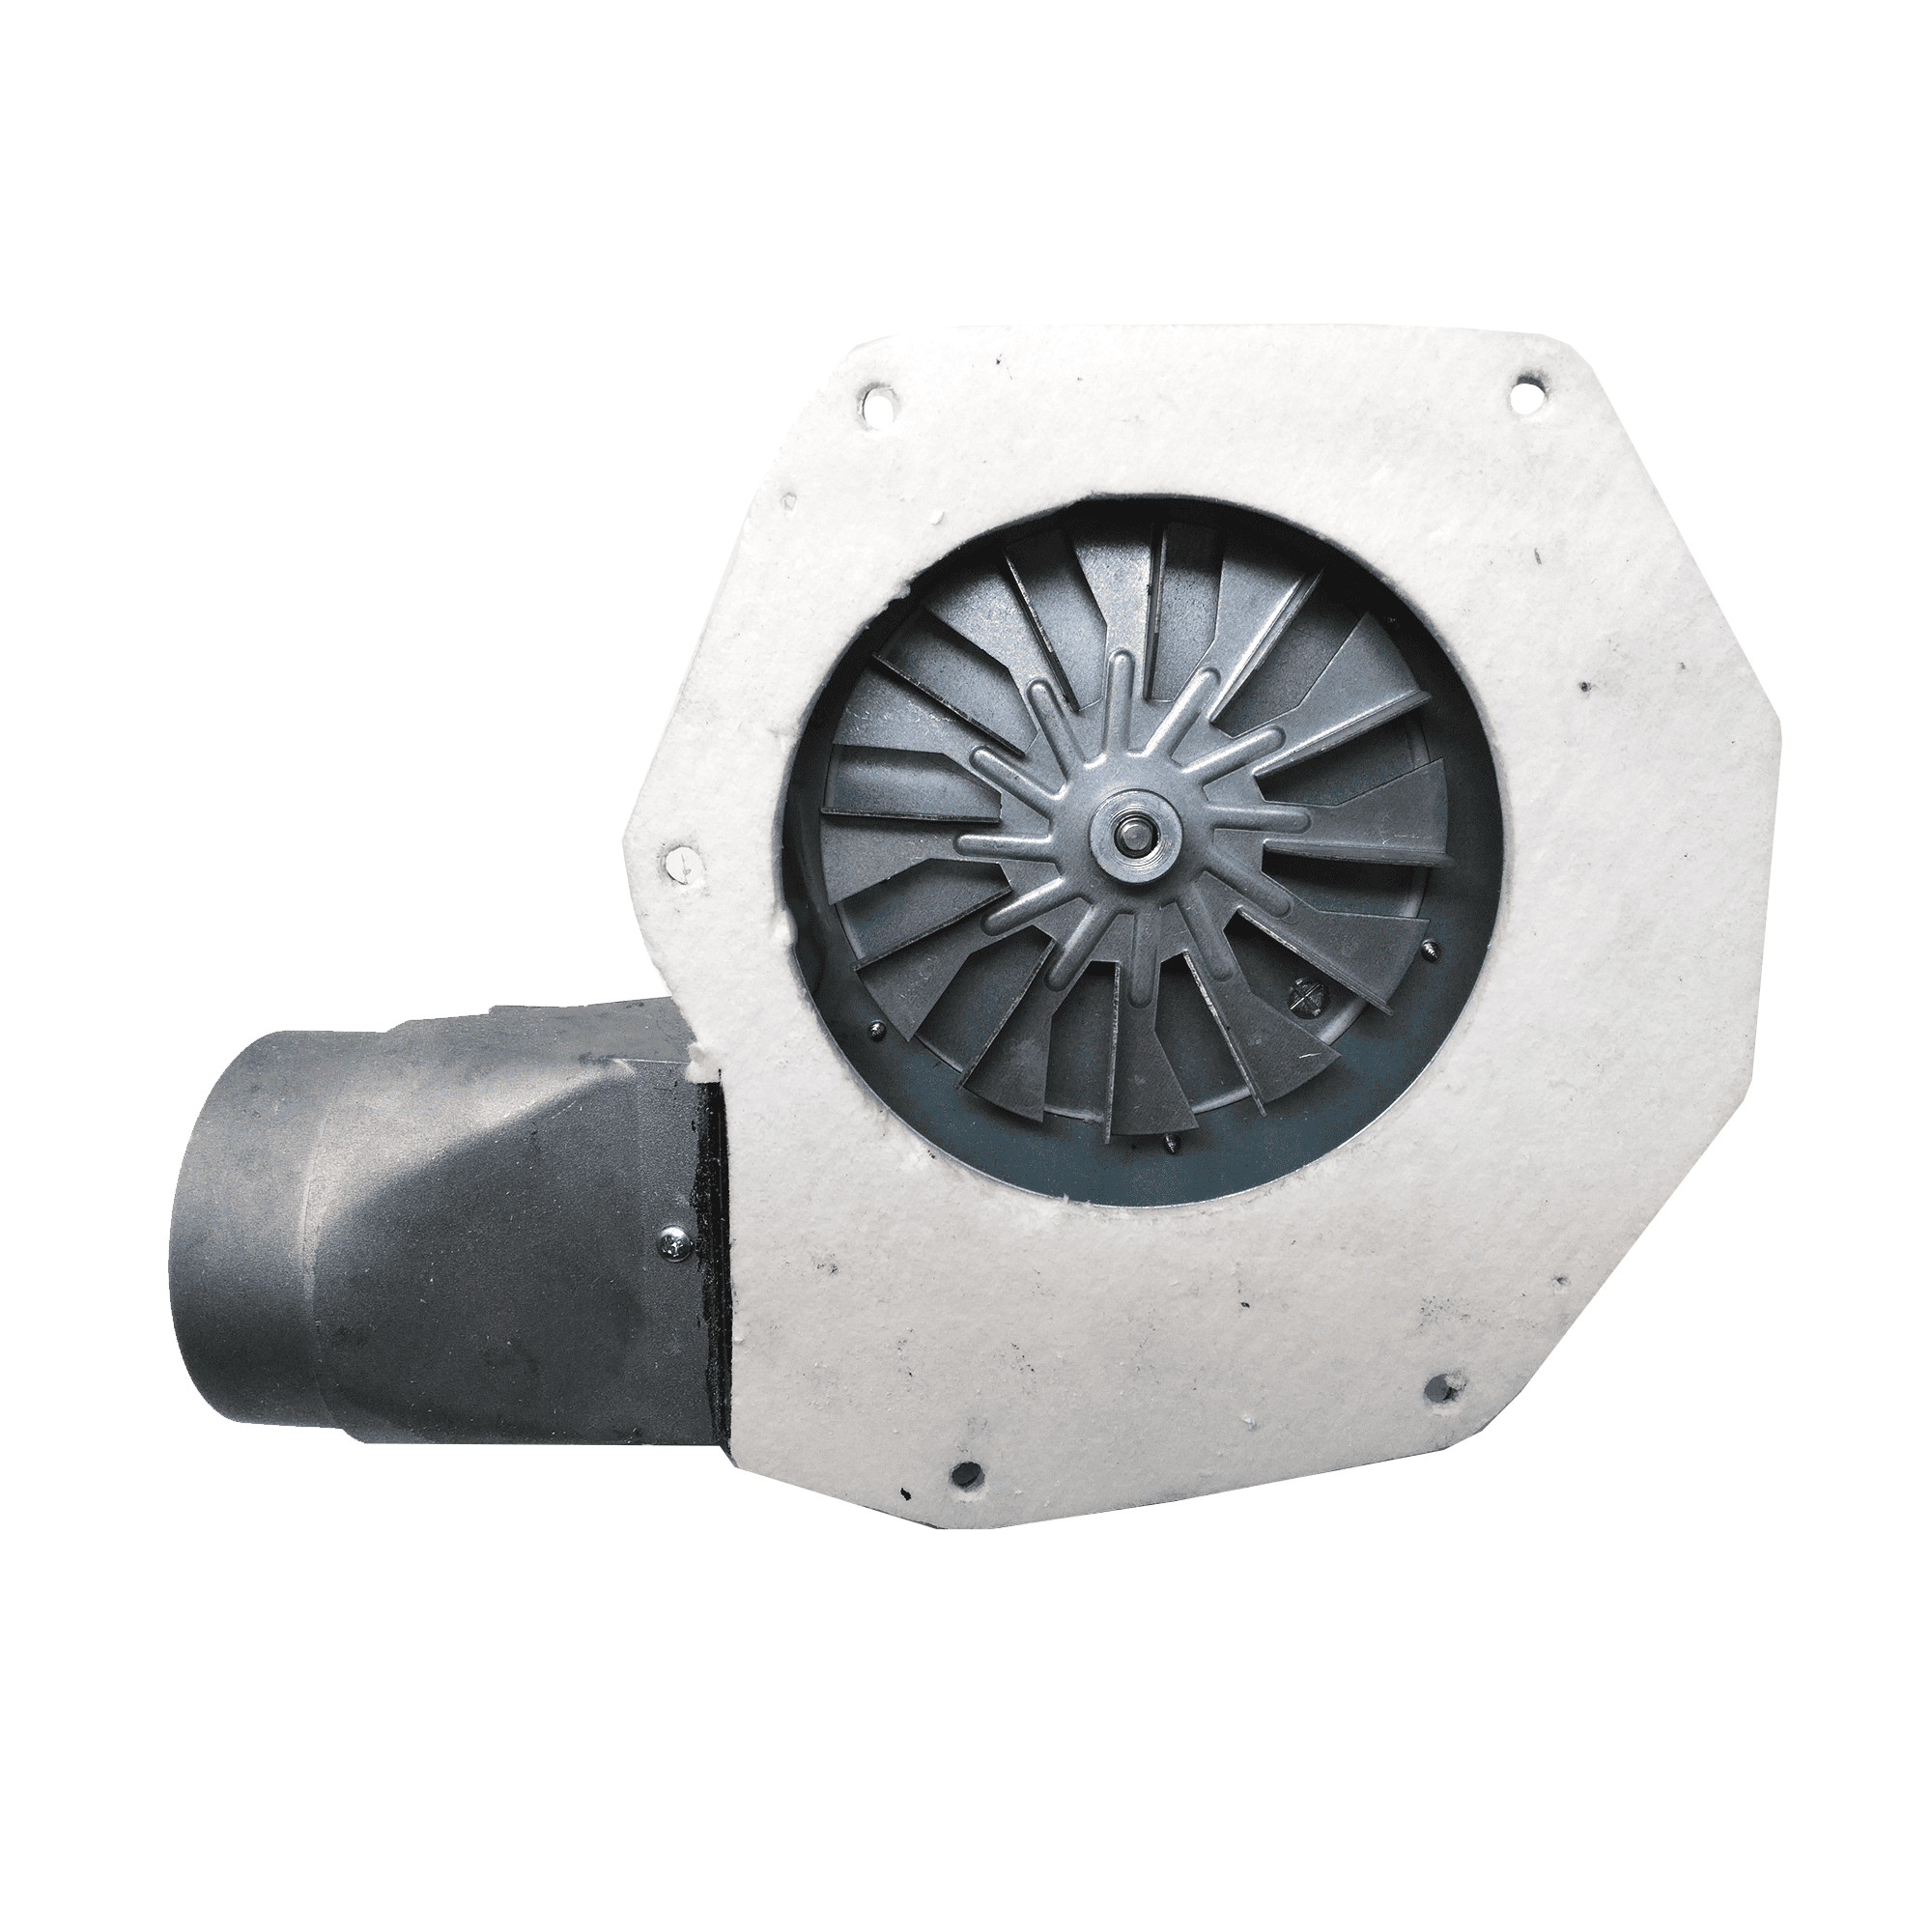 Englander After Market Combustion Blower With Housing, PU-076002B-Z-AMP